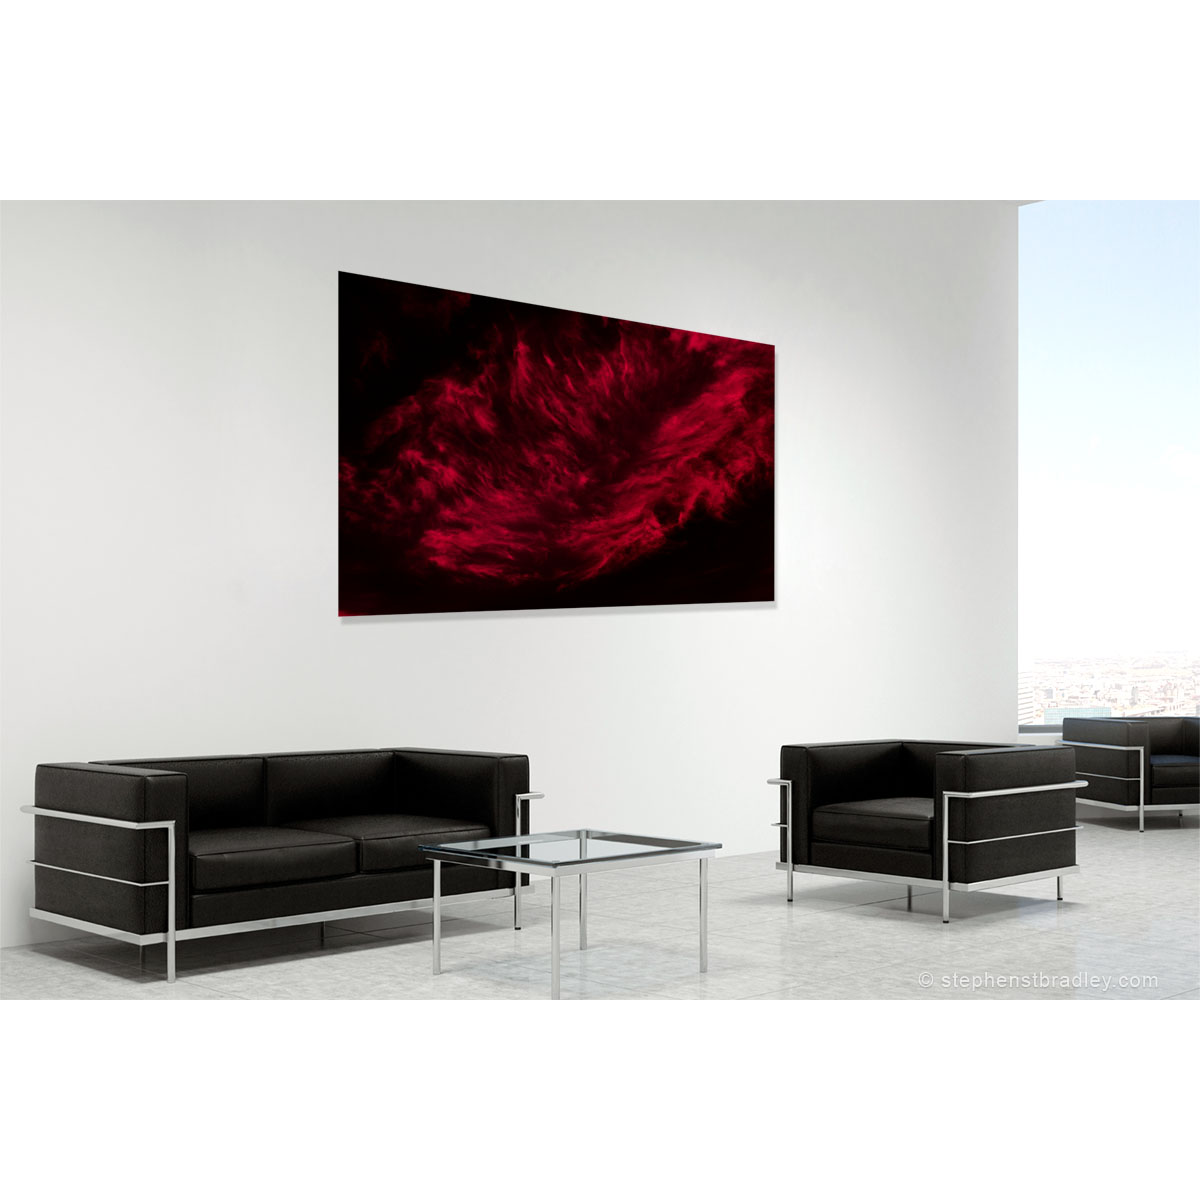 Vapour Red 6762. Fine art photo of Ireland in room setting by Stephen S T Bradley